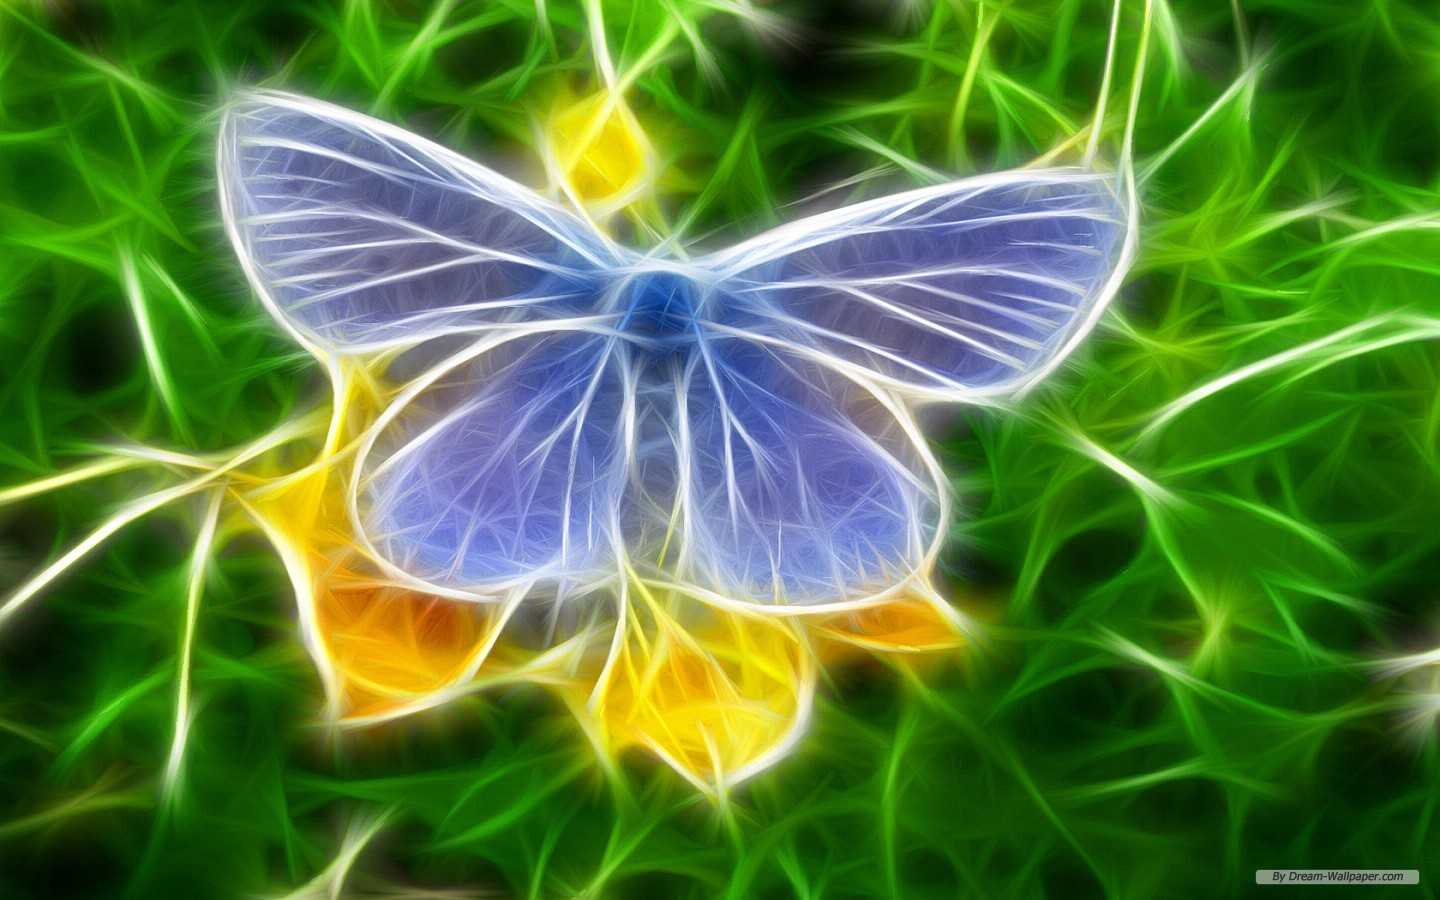 Art wallpaper   3D Animal wallpaper   1440x900 wallpaper   Index 1440x900